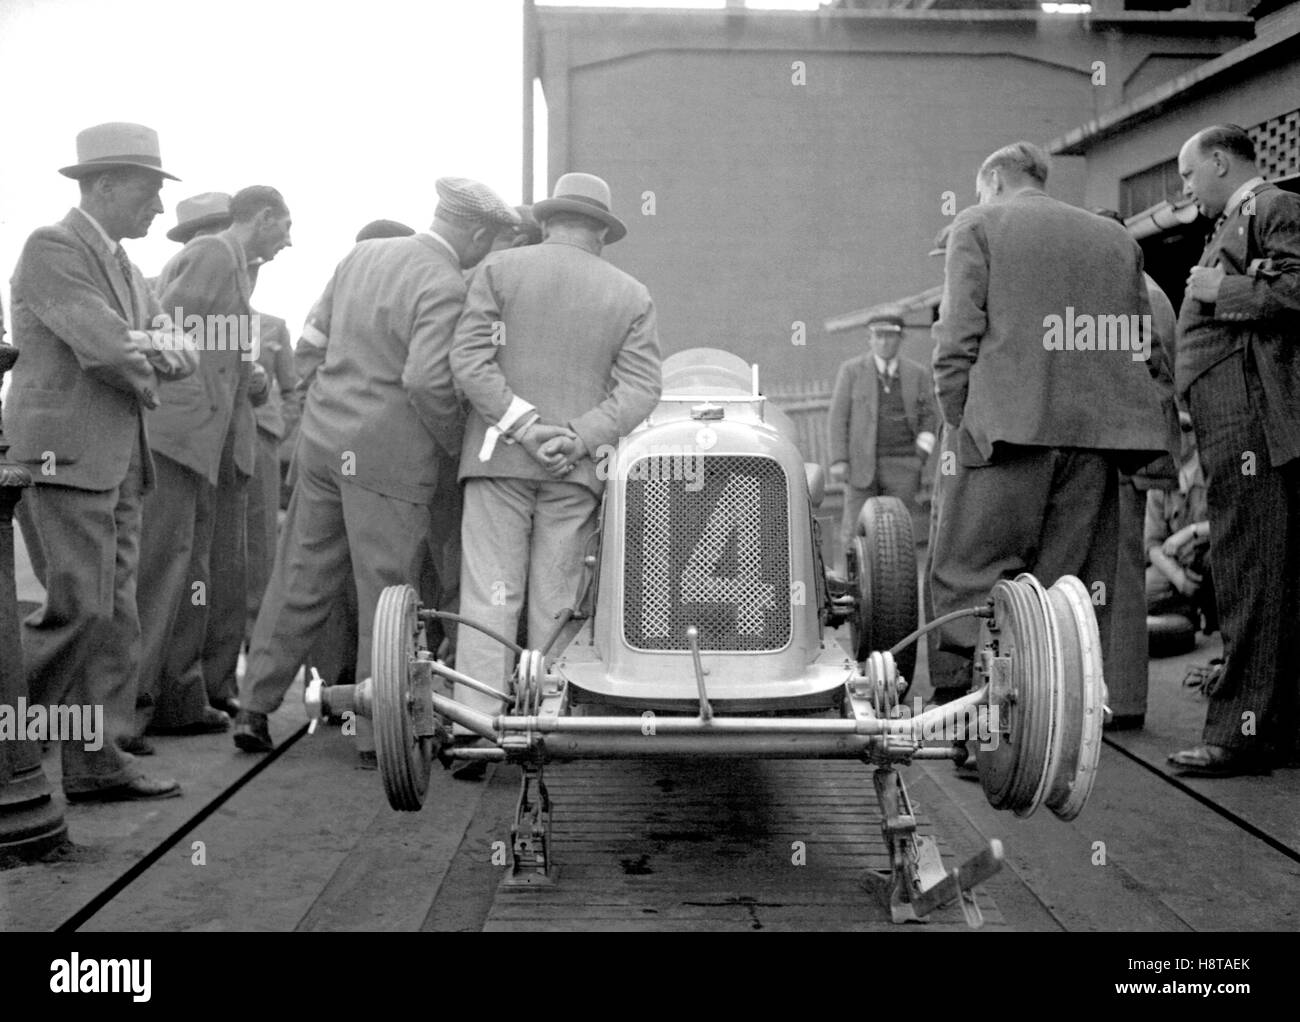 1930s MASERATI 8CM ON WEIGHBRIDGE - Stock Image